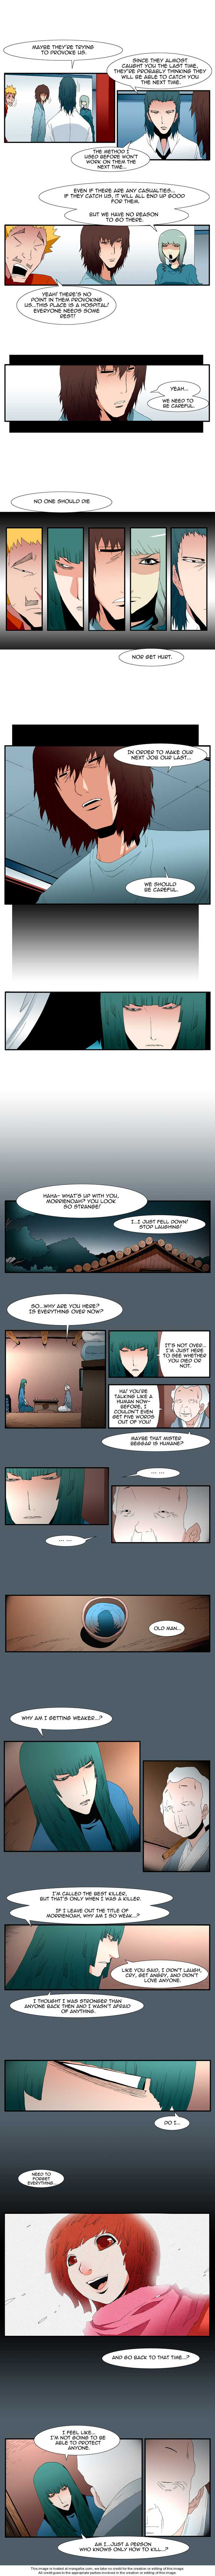 Trace 2 Page 2